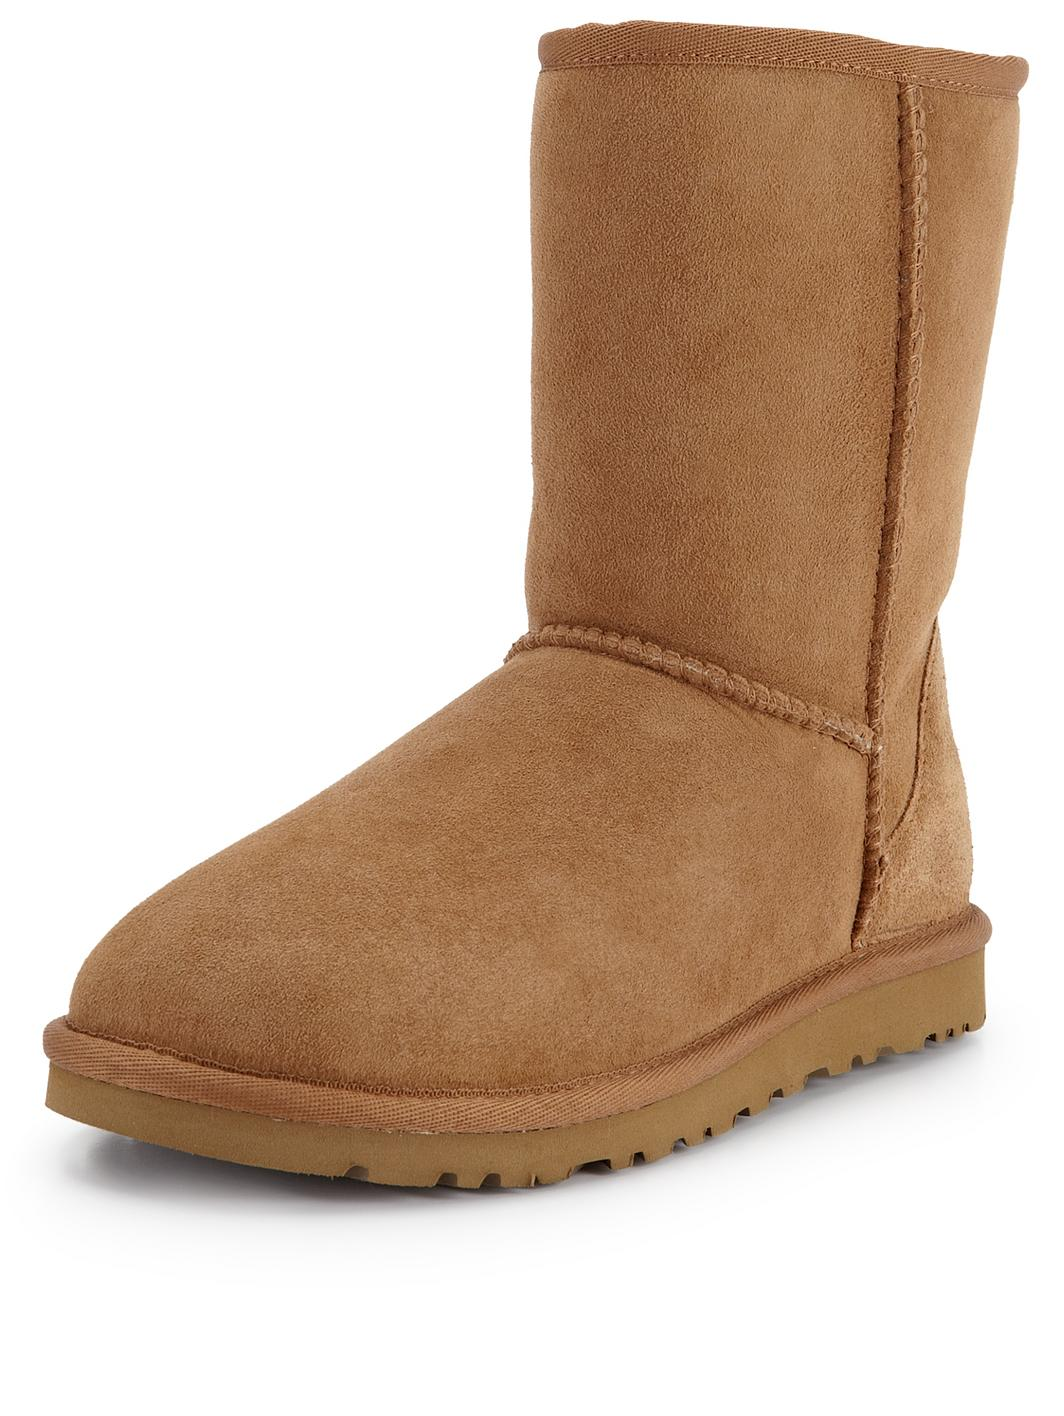 chestnut ugg boots for sale